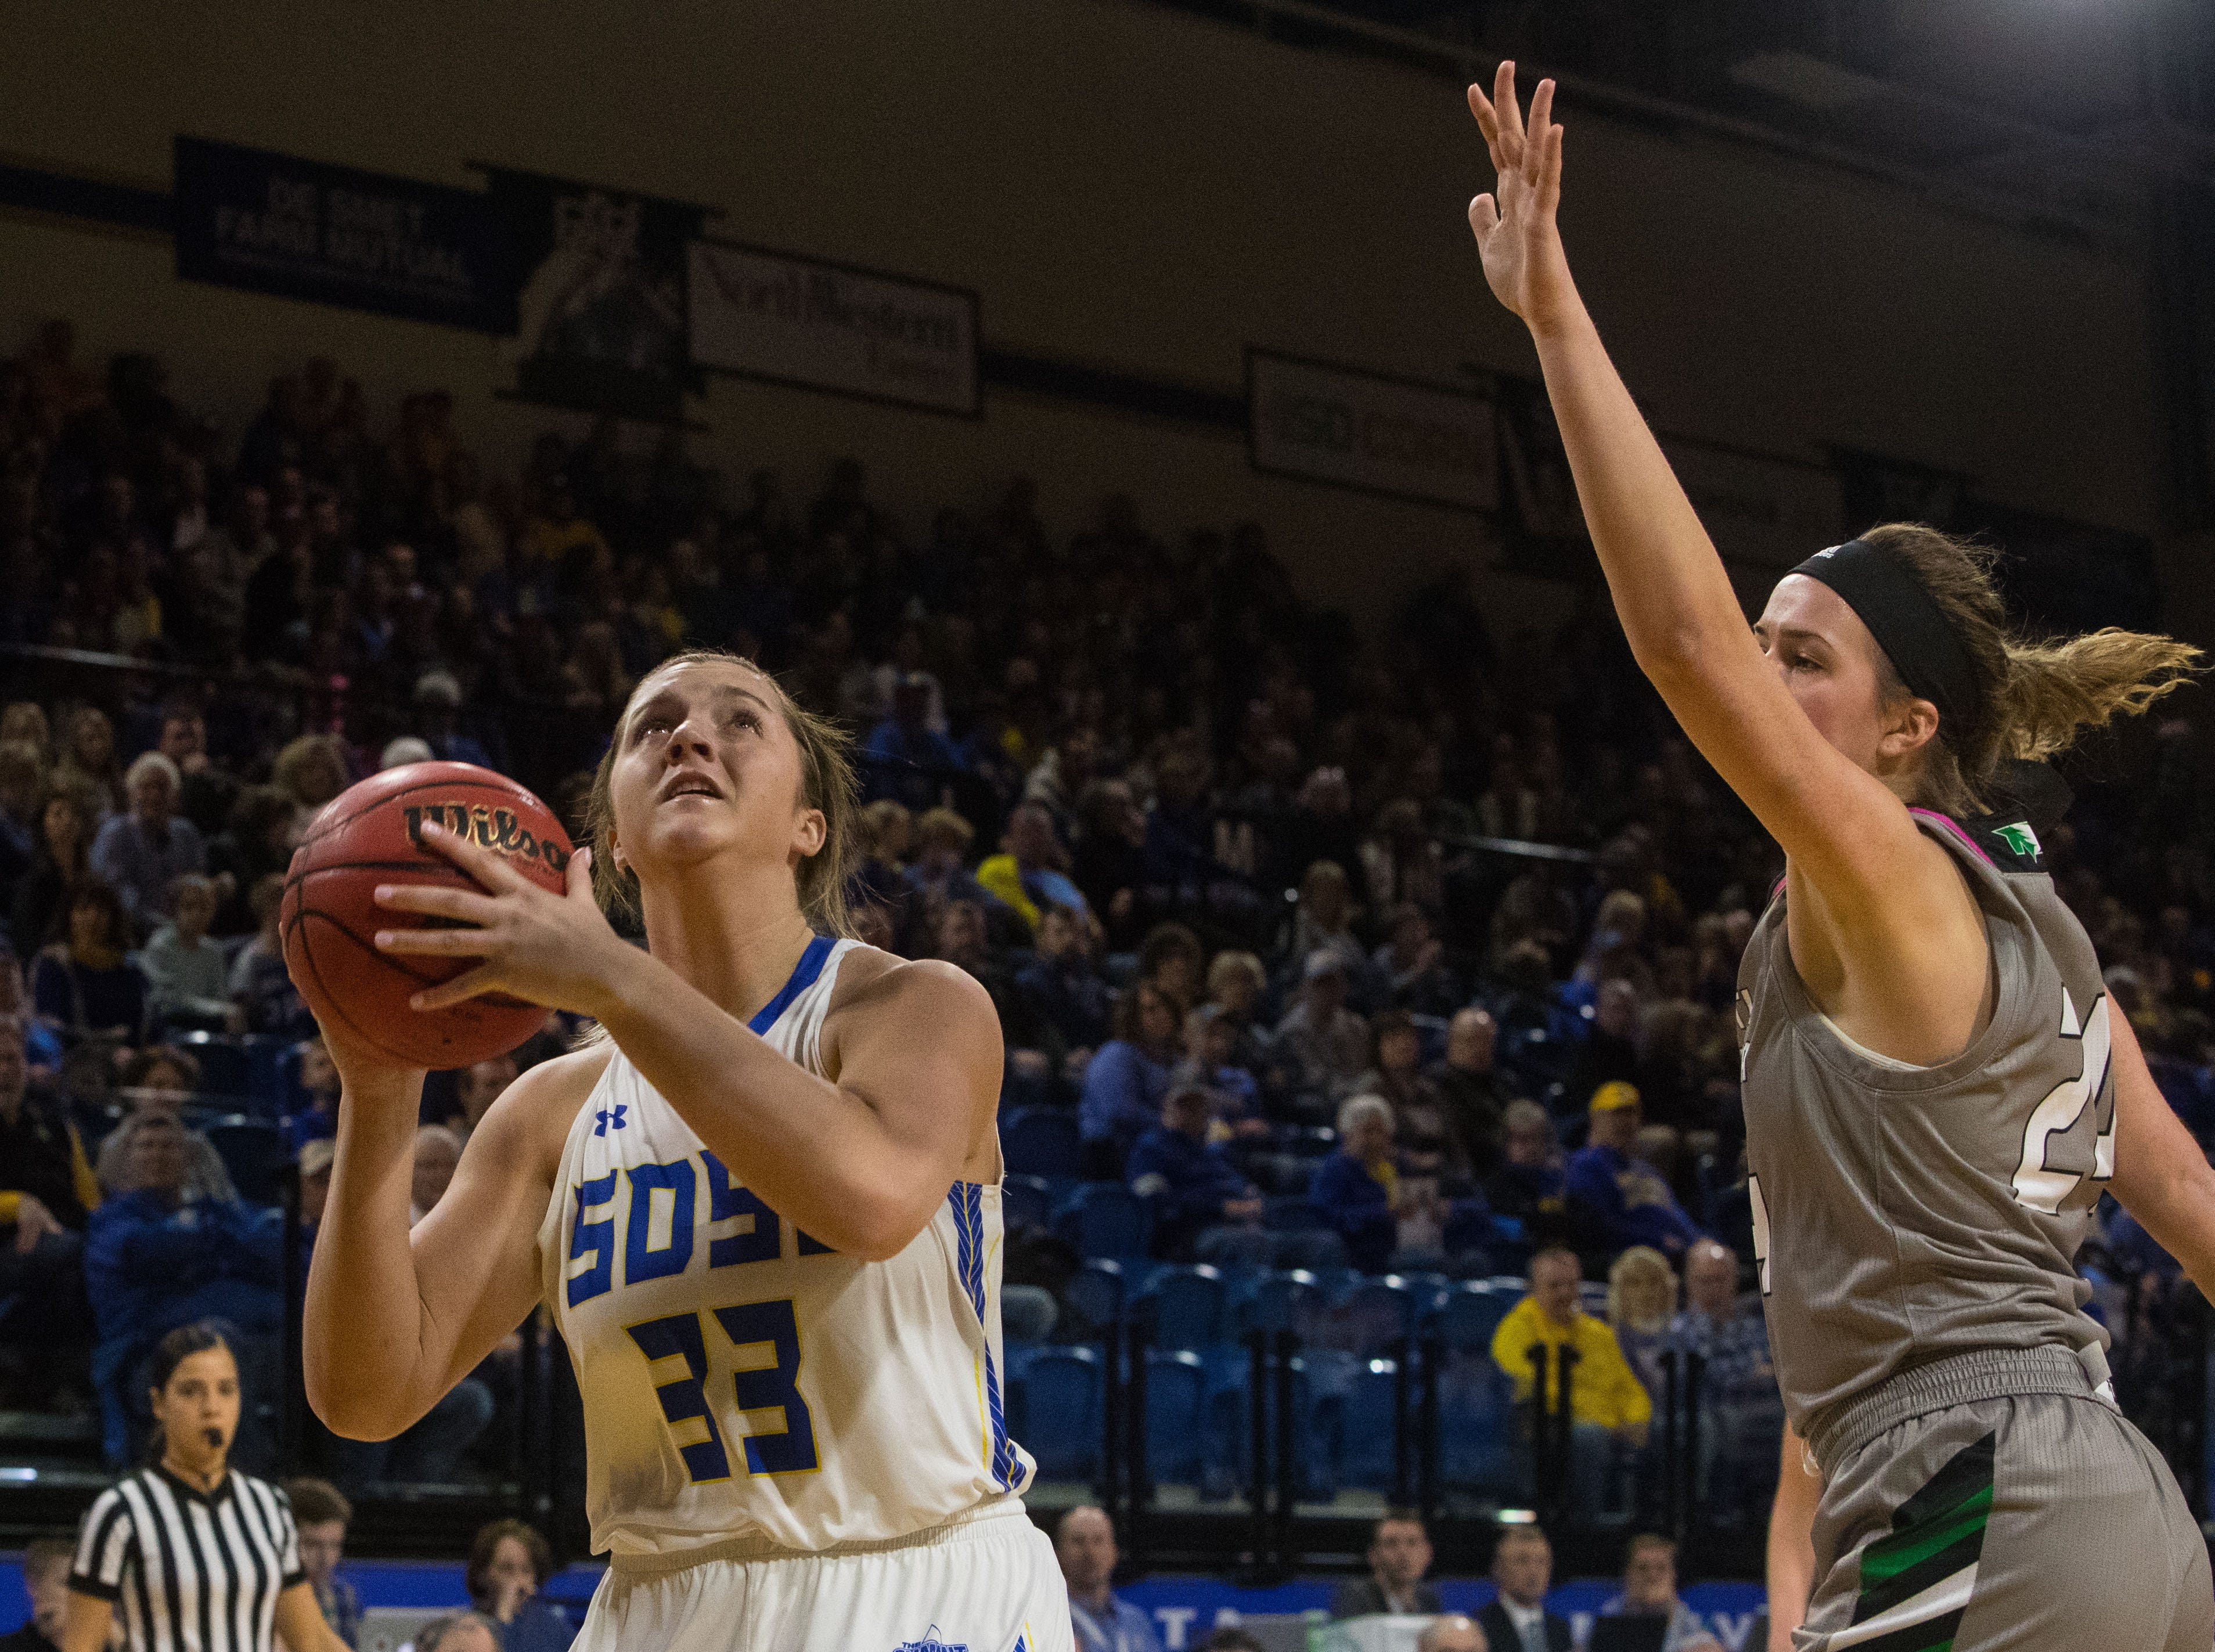 South Dakota State's Paiton Burckhard (33) goes up for a shot during a game against North Dakota in Brookings, S.D., Saturday, Feb. 9, 2019.